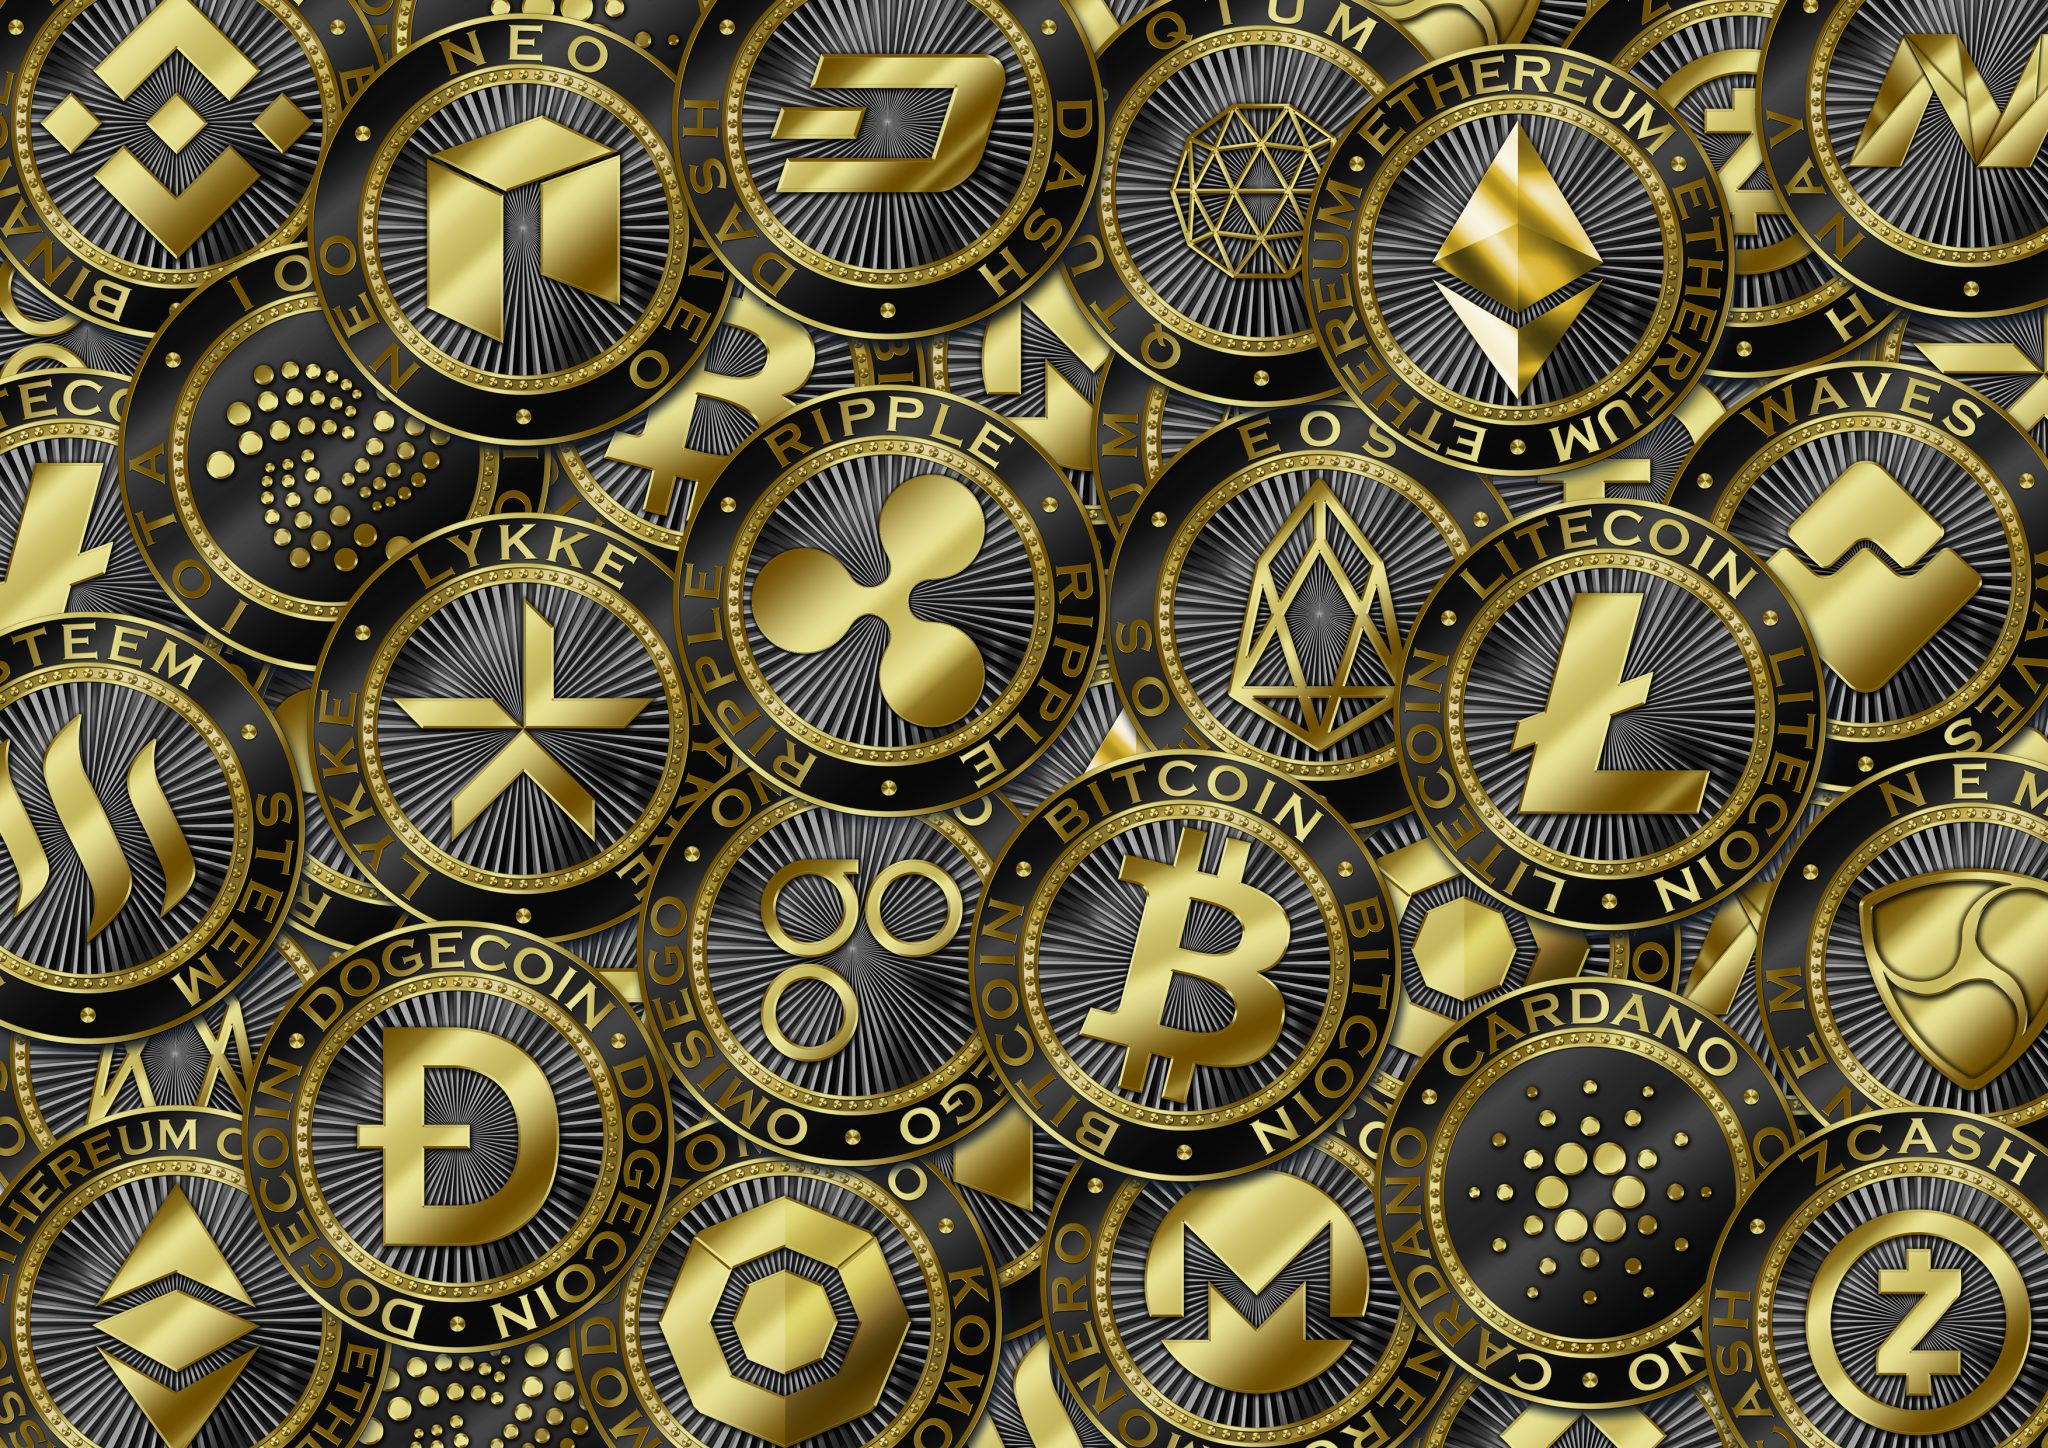 Cryptocurrency gold question / Original luxury illustration cryptocurrency coin